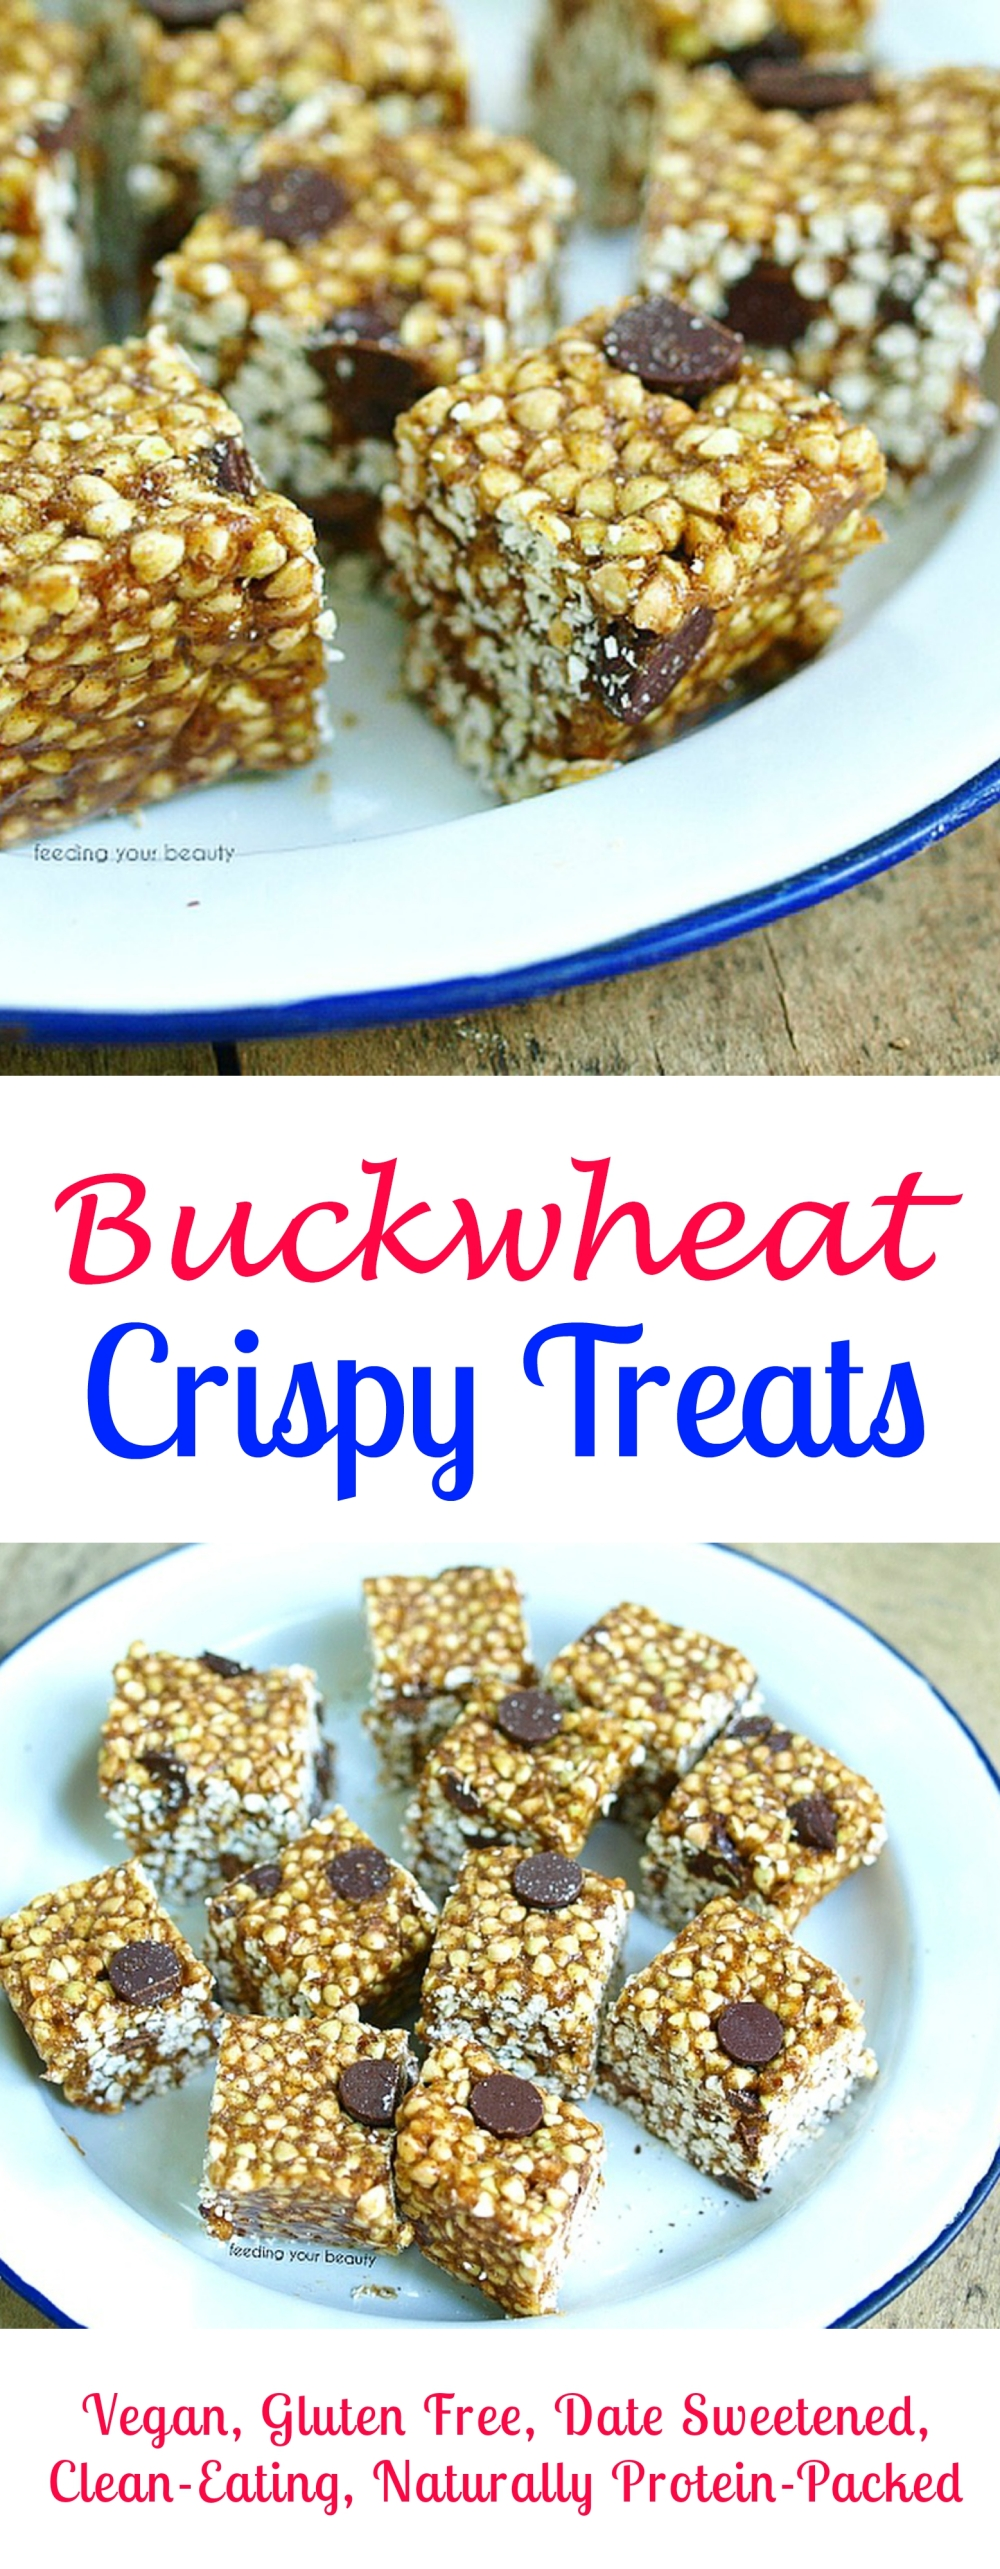 Buckwheat Crispy Treats - Vegan, Gluten Free, Date Sweetened, Clean Eating, Naturally Protein and Nutrient Packed, Nut Free Option!